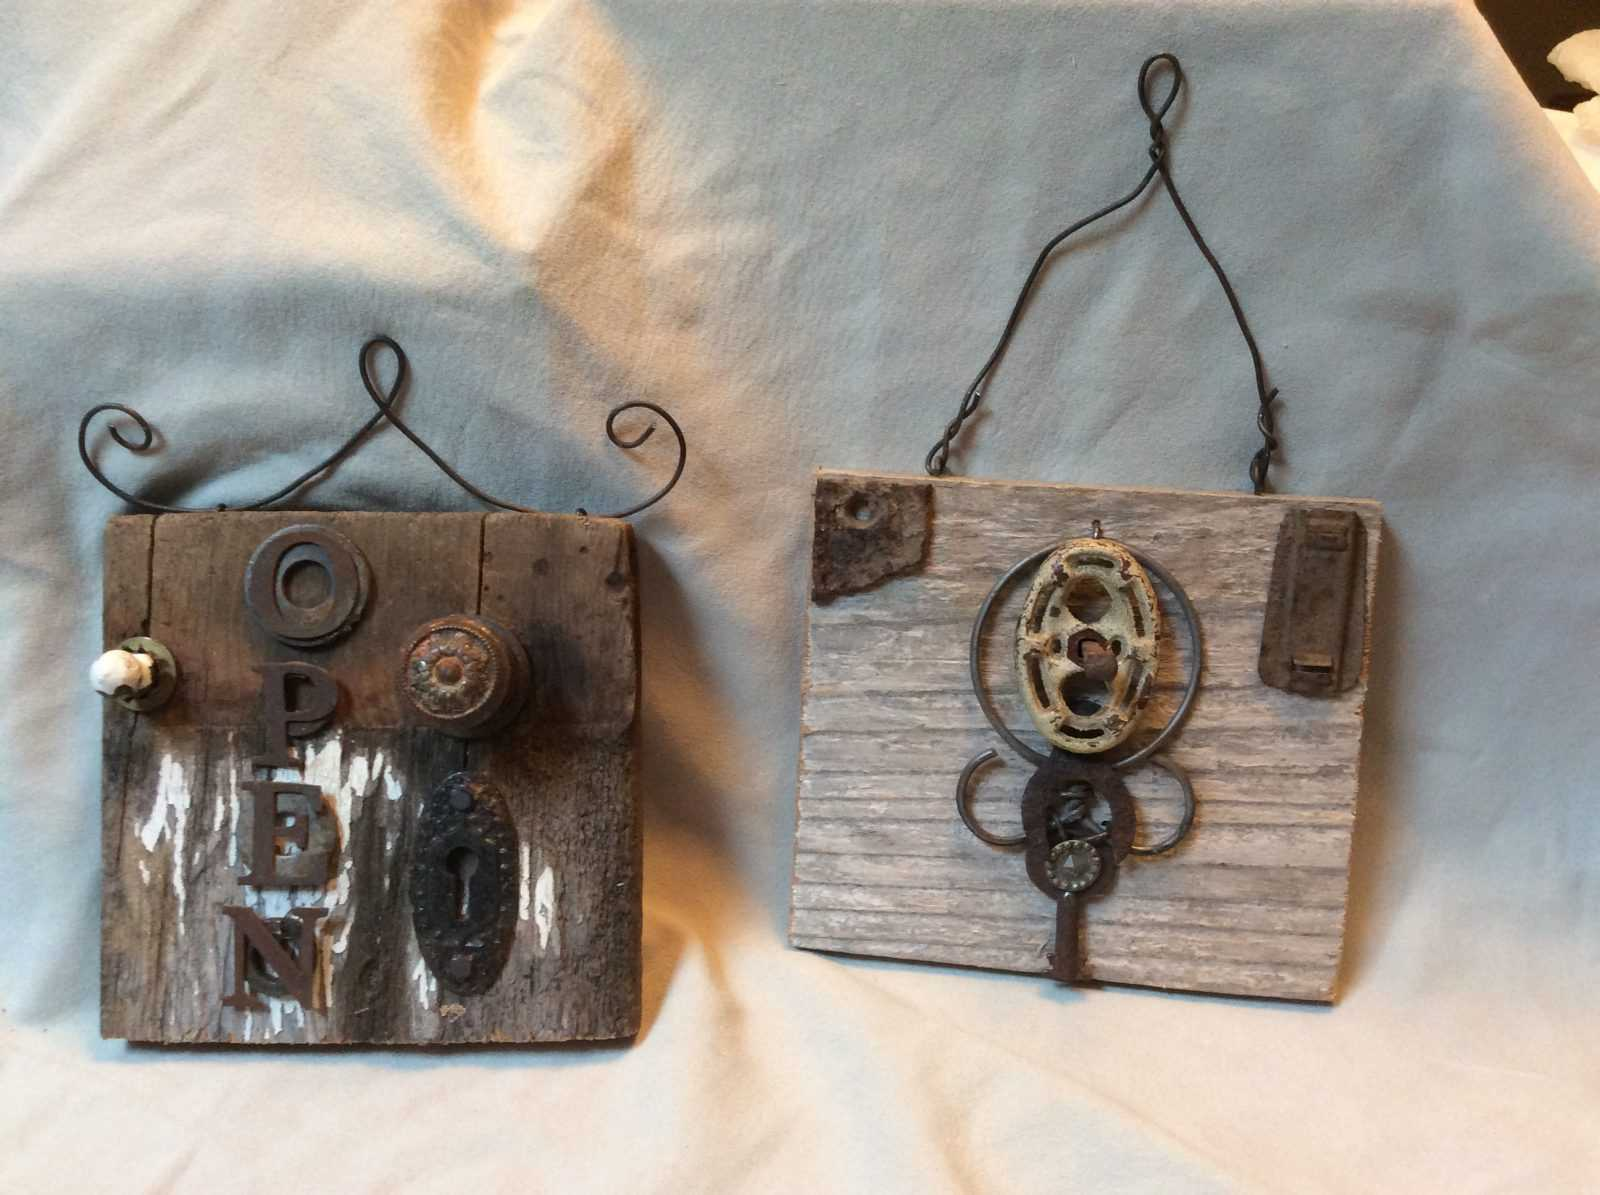 repurposed wall hangings on board